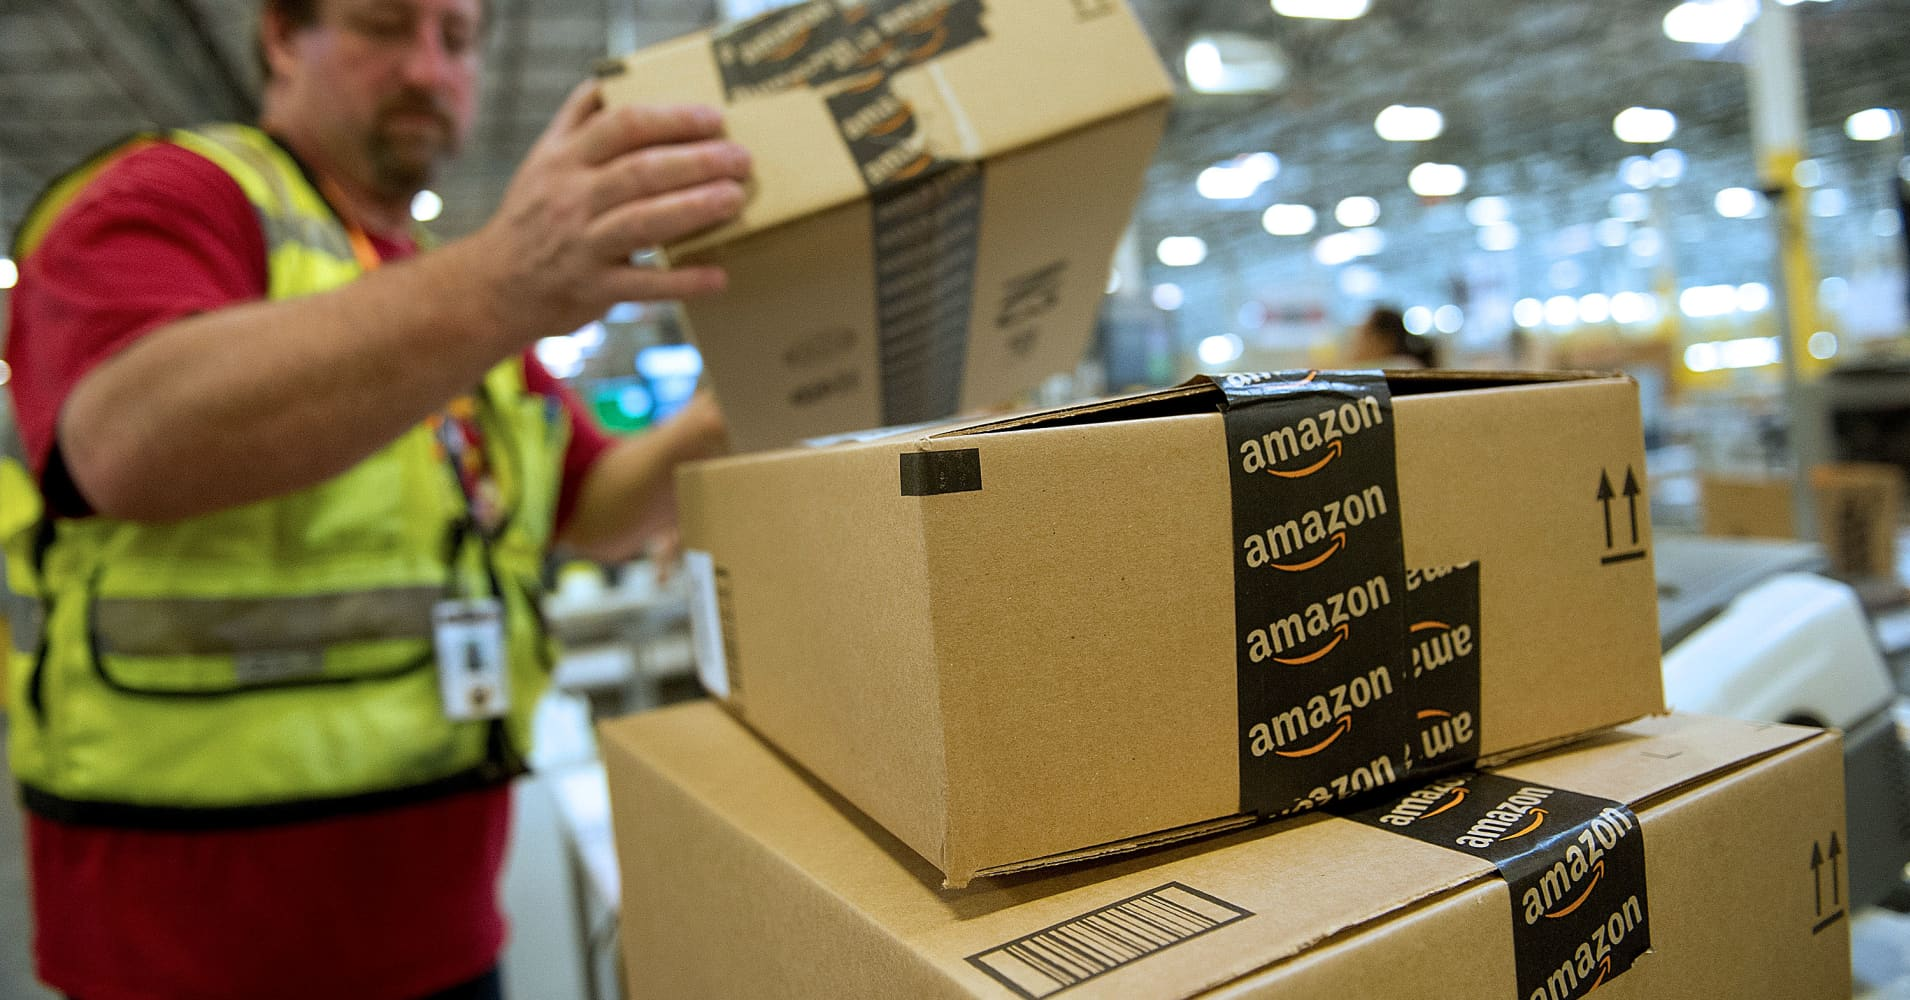 Amazon\'s victims: These stocks have lost $70 billion so far this year